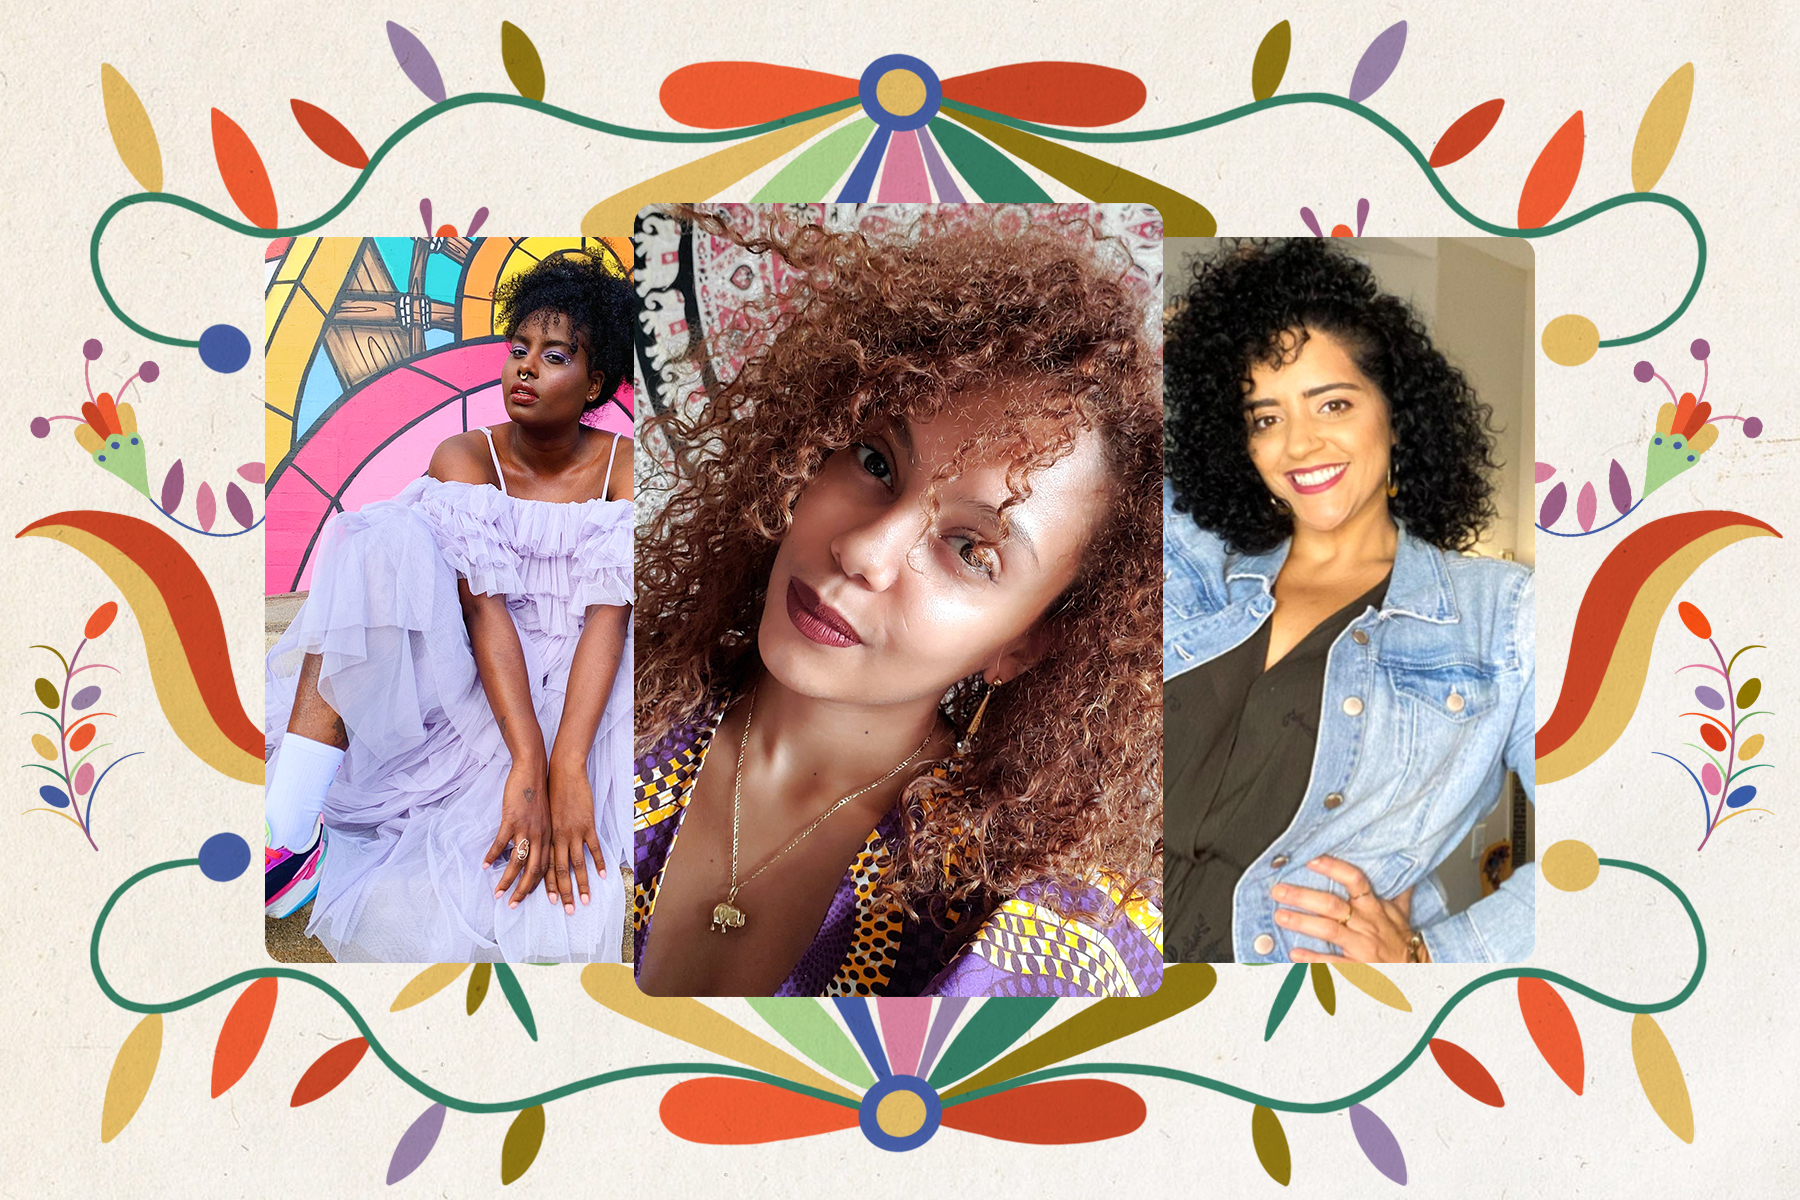 afro latinx fashion influence